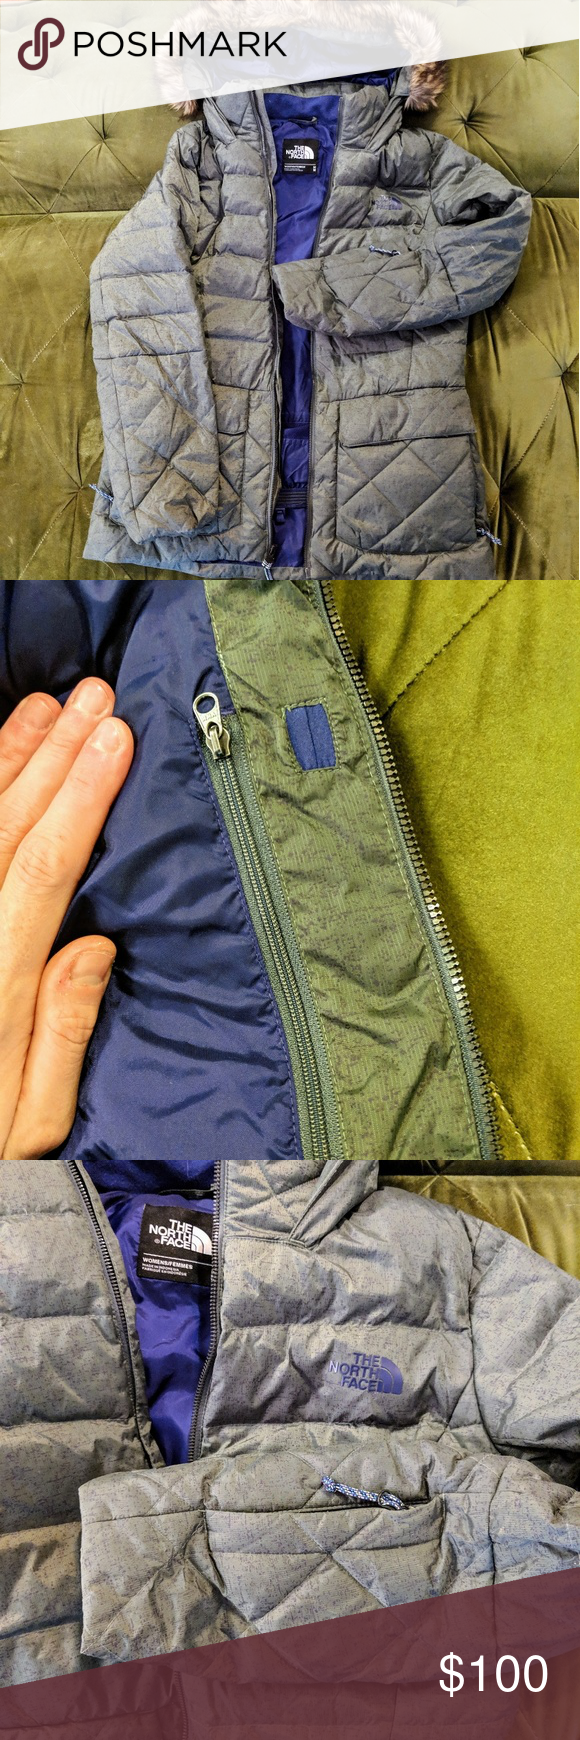 North Face Winter Jacket Winter Jacket North Face Fur Lined Hoodie Winter Jackets [ 1740 x 580 Pixel ]